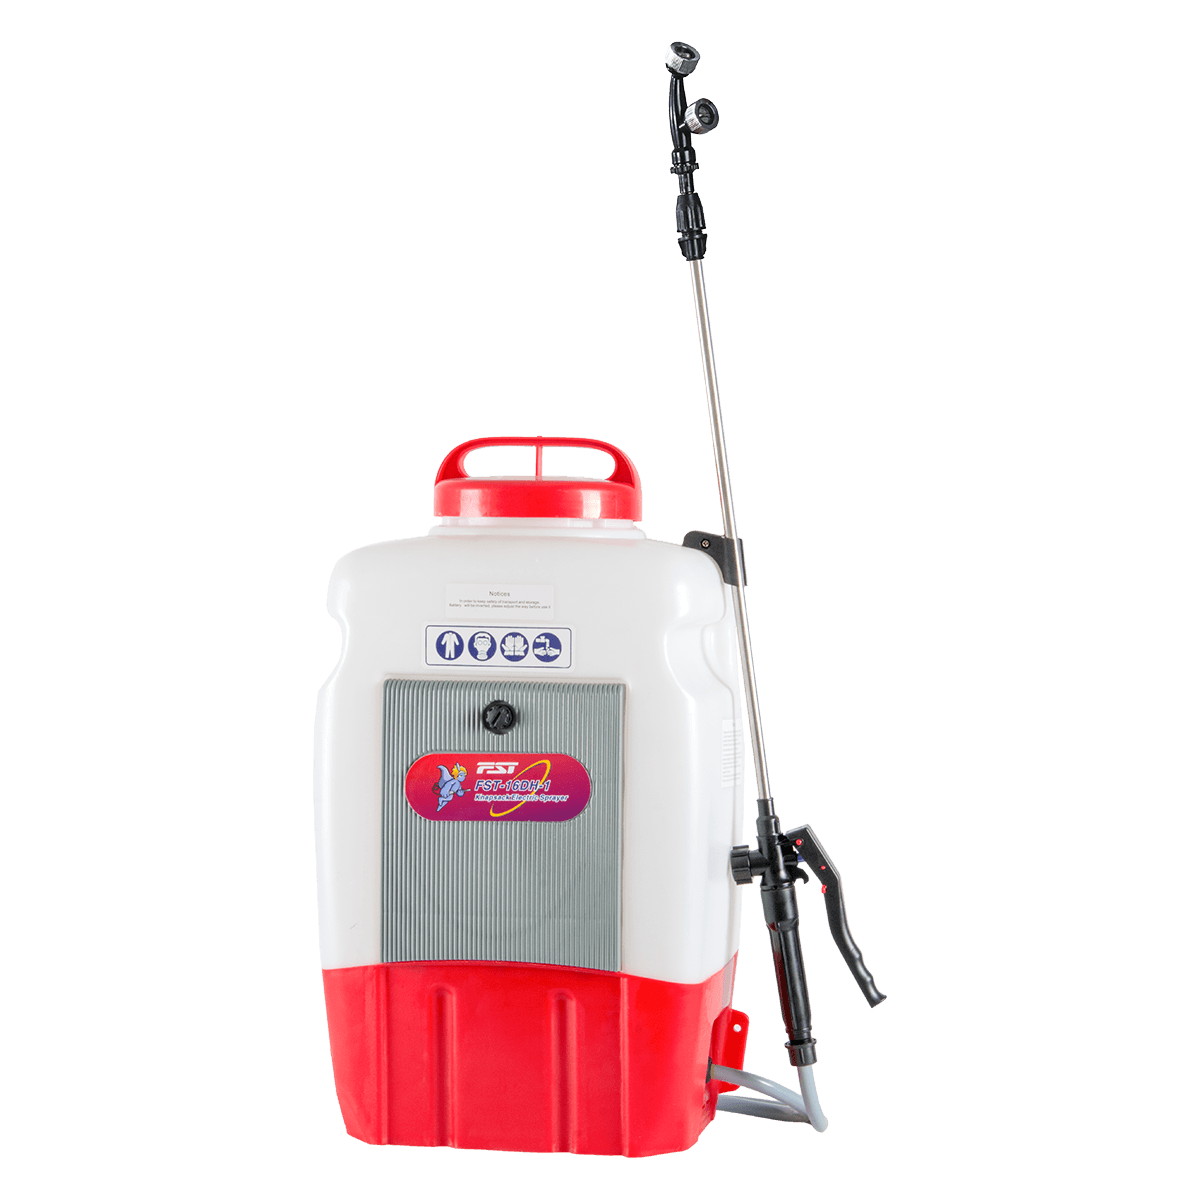 FST-16DH-1 Knapsack Electric Sprayer